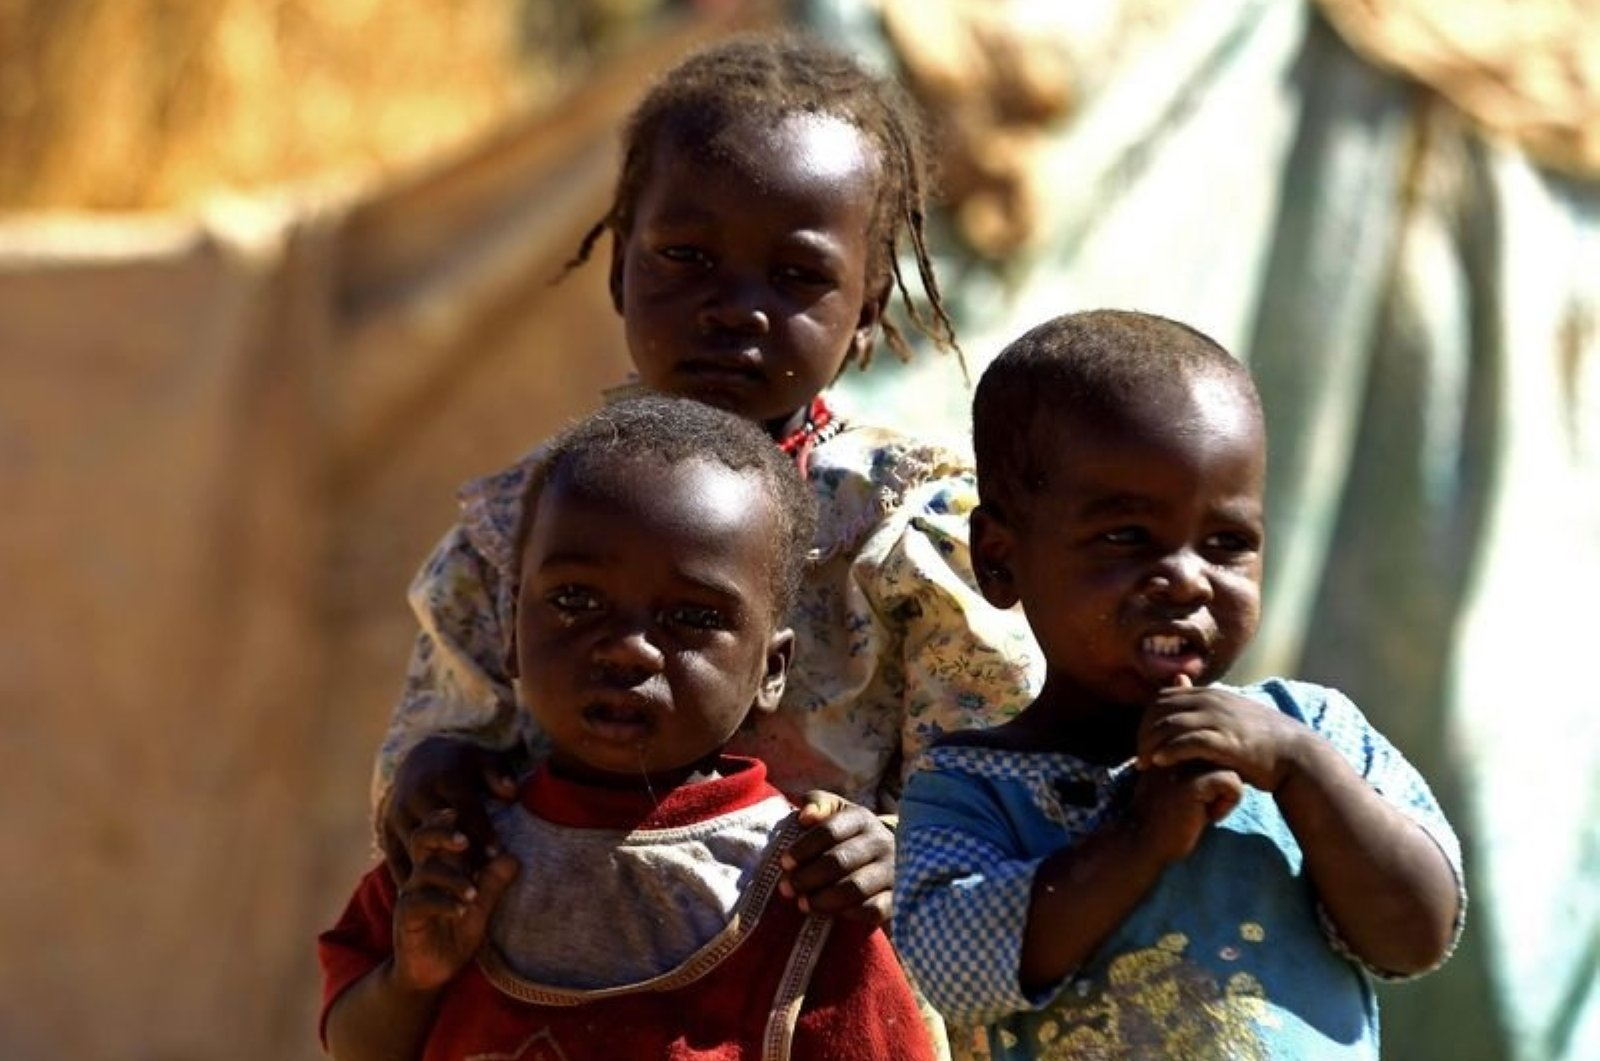 Children arrive at the Zamzam IDP camp for internally displaced persons (IDP), near El Fasher, North Darfur, Sudan, Feb. 4, 2015. (REUTERS Photo)